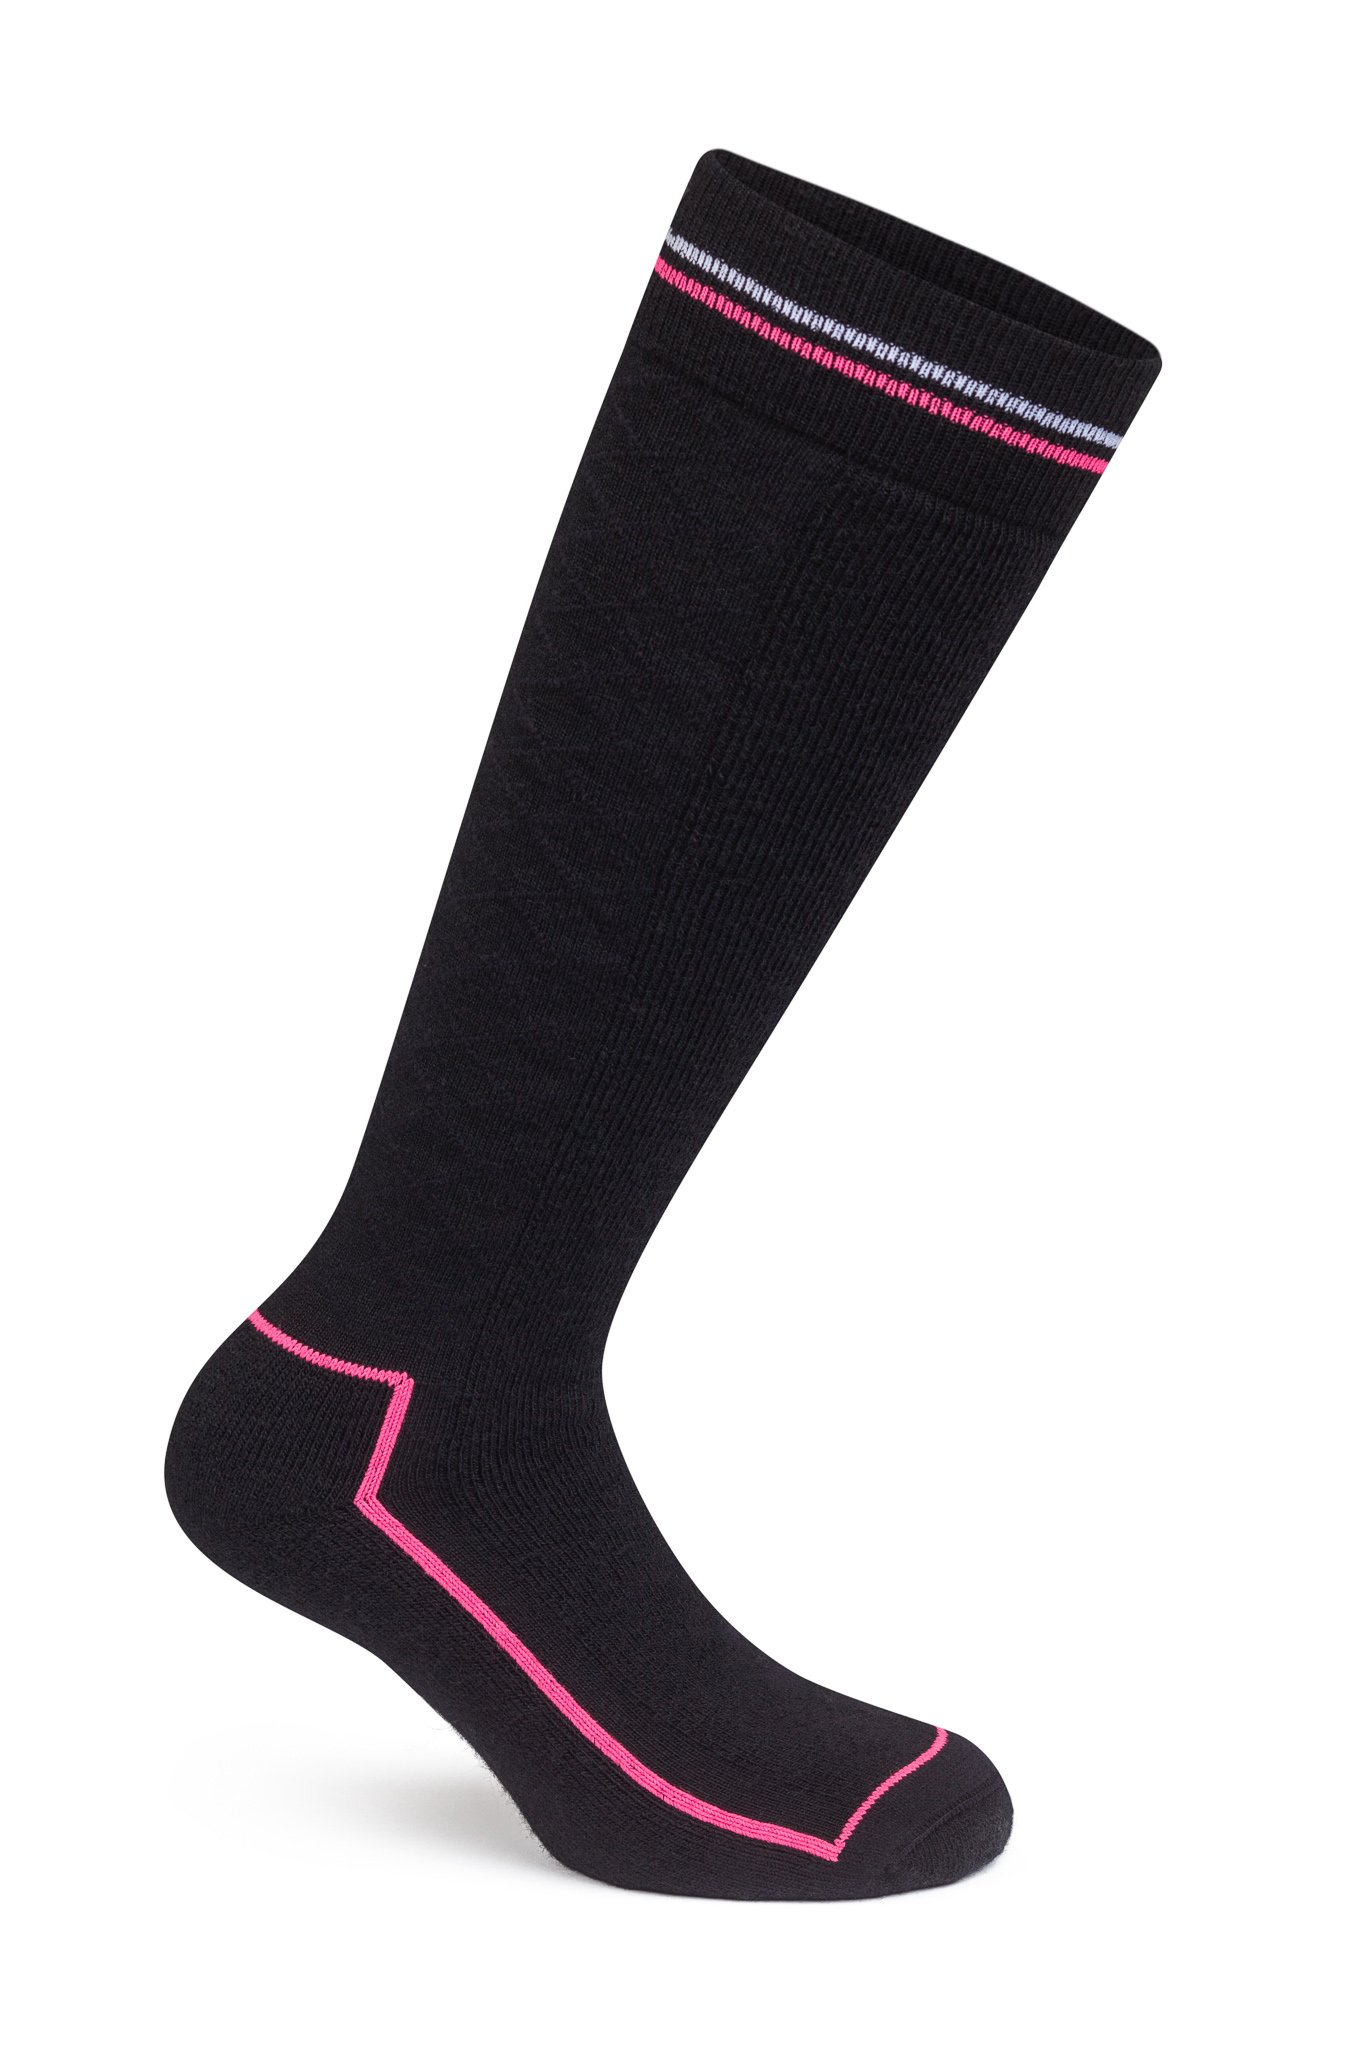 Rapha Deep Winter Cycling Socks